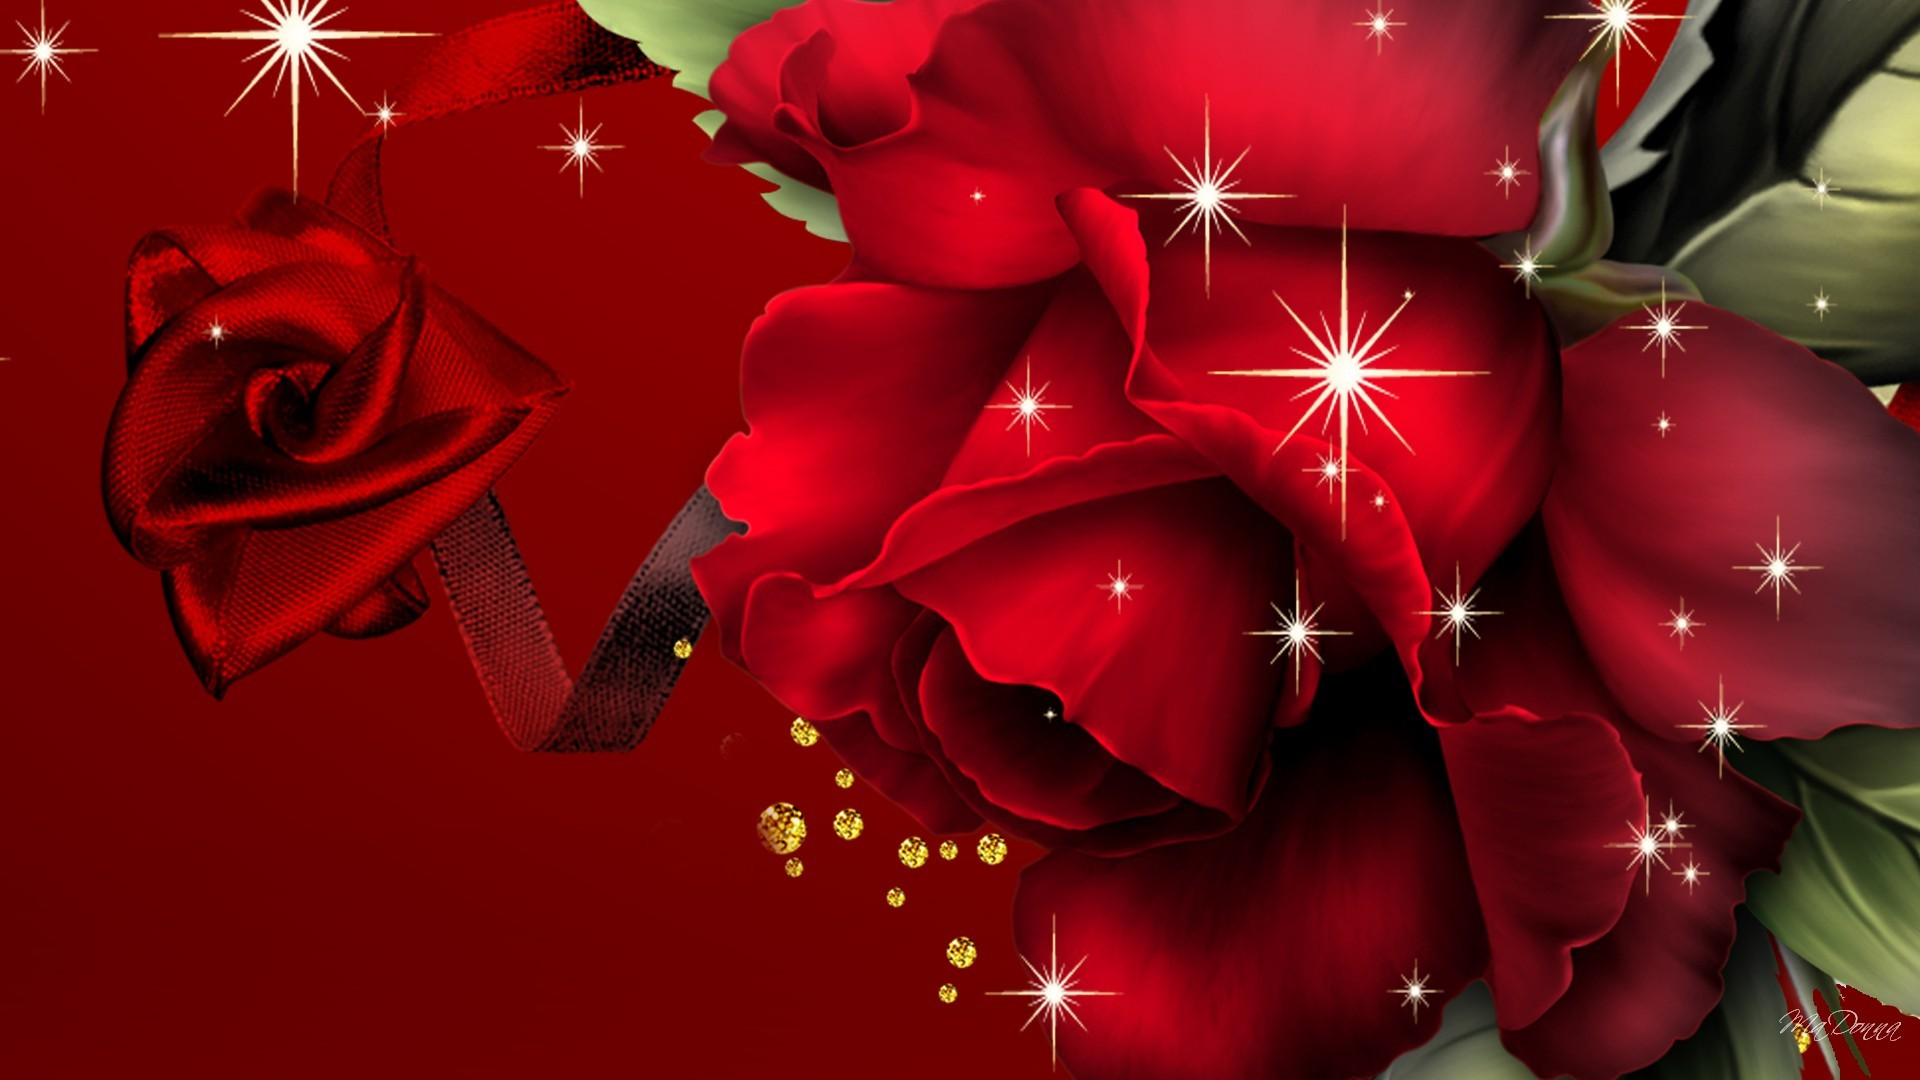 Red Rose Wallpaper Desktop 60 Pictures